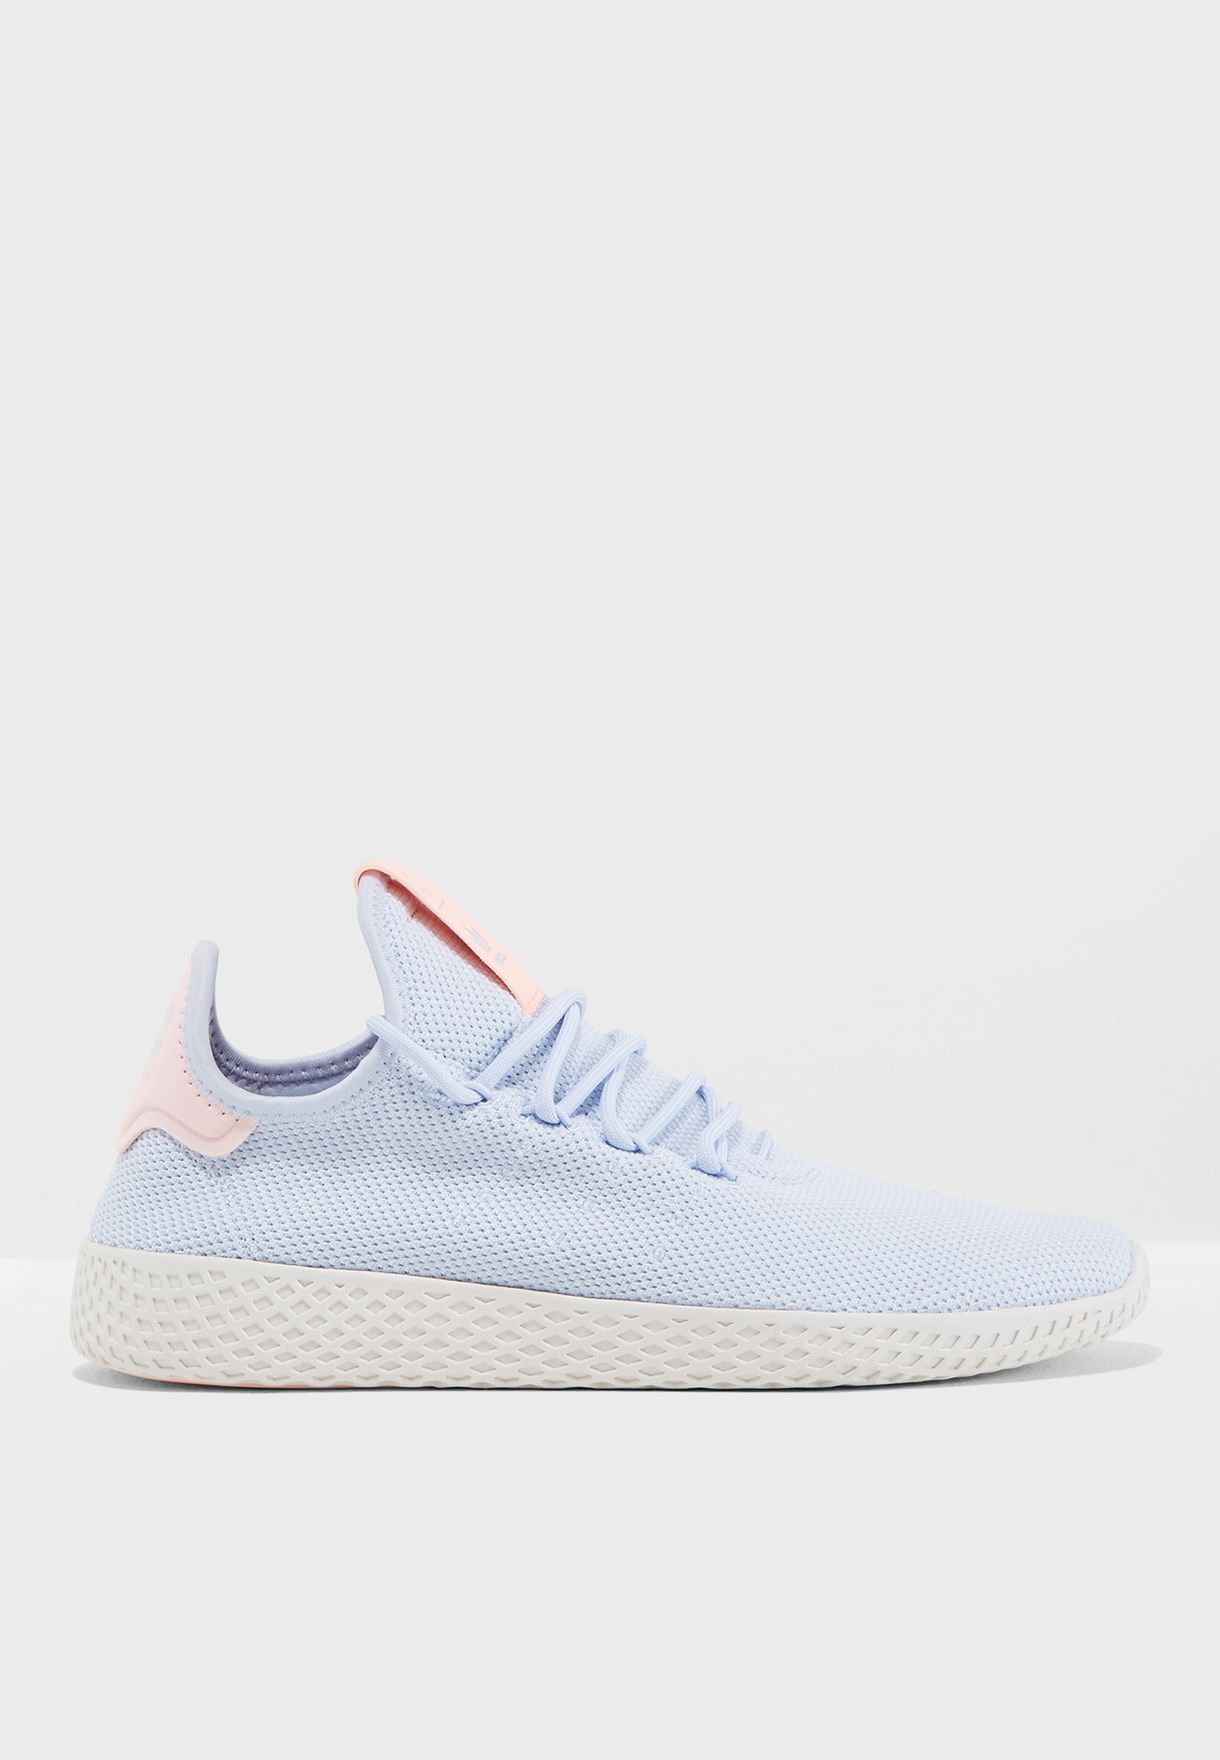 a579ef38e Shop adidas Originals blue Pharrell Williams Tennis Hu B41884 for ...